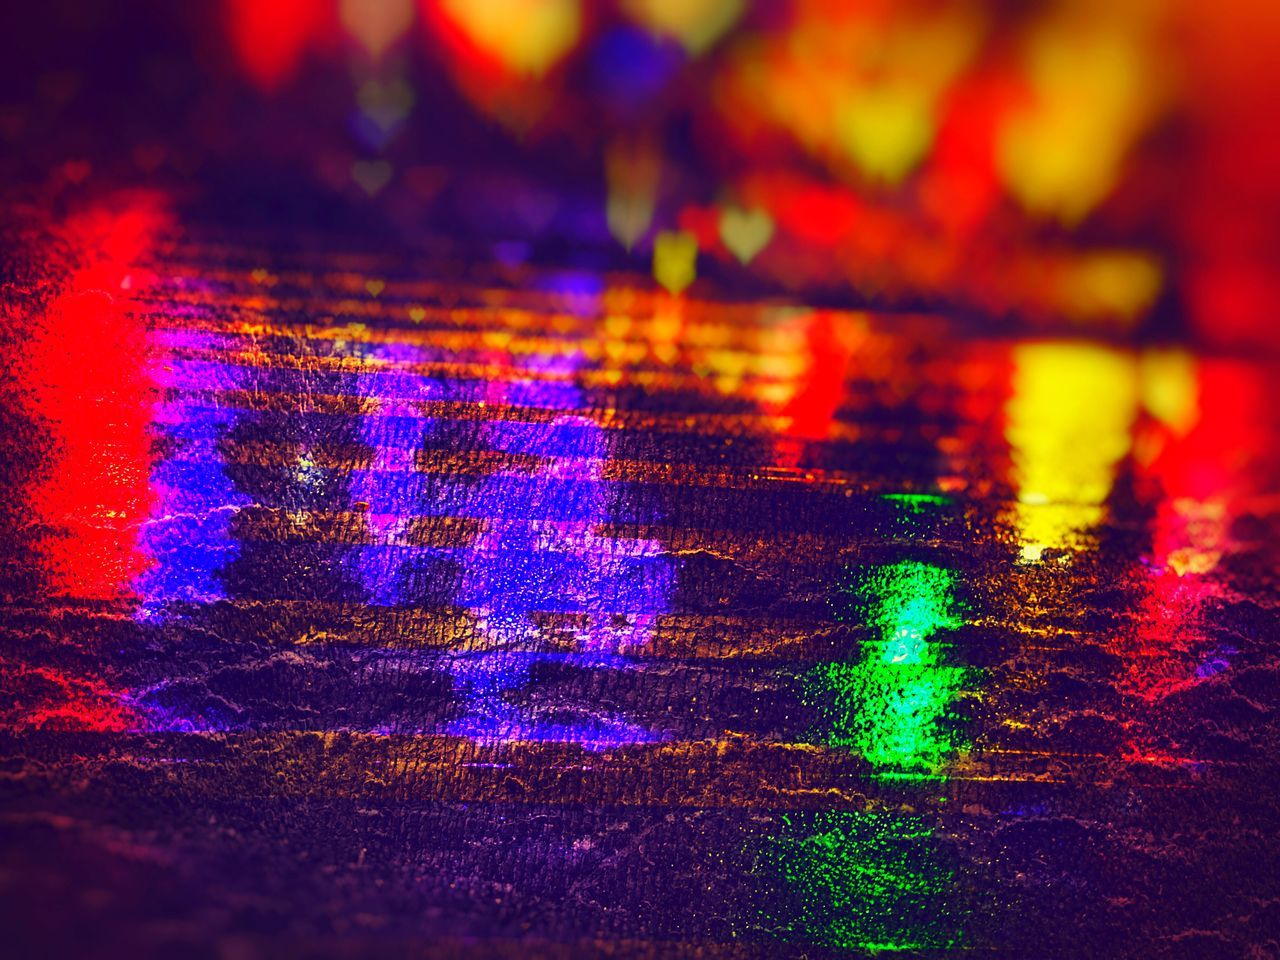 multi colored, illuminated, abstract, vibrant color, full frame, no people, backgrounds, night, close-up, spectrum, outdoors